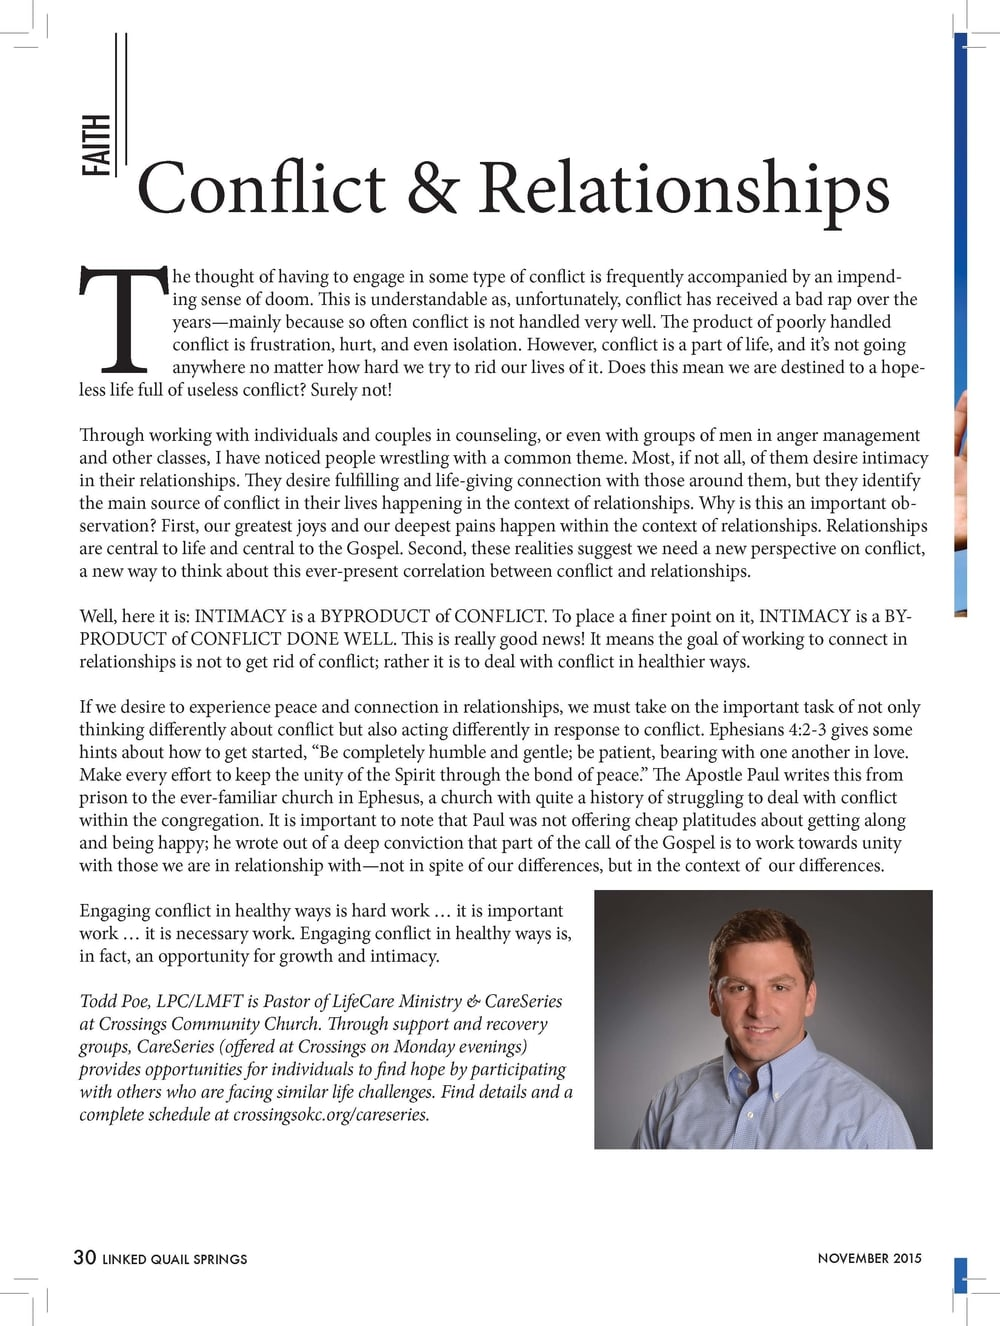 """The thought of having to engage in some type of conflict is frequently accompanied by an impending  sense of doom. This is understandable as, unfortunately, conflict has received a bad rap over the  years—mainly because so often conflict is not handled very well. The product of poorly handled  conflict is frustration, hurt, and even isolation. However, conflict is a part of life, and it's not going  anywhere no matter how hard we try to rid our lives of it. Does this mean we are destined to a hopeless  life full of useless conflict? Surely not!  Through working with individuals and couples in counseling, or even with groups of men in anger management  and other classes, I have noticed people wrestling with a common theme. Most, if not all, of them desire intimacy  in their relationships. They desire fulfilling and life-giving connection with those around them, but they identify  the main source of conflict in their lives happening in the context of relationships. Why is this an important observation?  First, our greatest joys and our deepest pains happen within the context of relationships. Relationships  are central to life and central to the Gospel. Second, these realities suggest we need a new perspective on conflict,  a new way to think about this ever-present correlation between conflict and relationships.  Well, here it is: INTIMACY is a BYPRODUCT of CONFLICT. To place a finer point on it, INTIMACY is a BYPRODUCT  of CONFLICT DONE WELL. This is really good news! It means the goal of working to connect in  relationships is not to get rid of conflict; rather it is to deal with conflict in healthier ways.  If we desire to experience peace and connection in relationships, we must take on the important task of not only  thinking differently about conflict but also acting differently in response to conflict. Ephesians 4:2-3 gives some  hints about how to get started, """"Be completely humble and gentle; be patient, bearing with one another in love.  Make every effort t"""